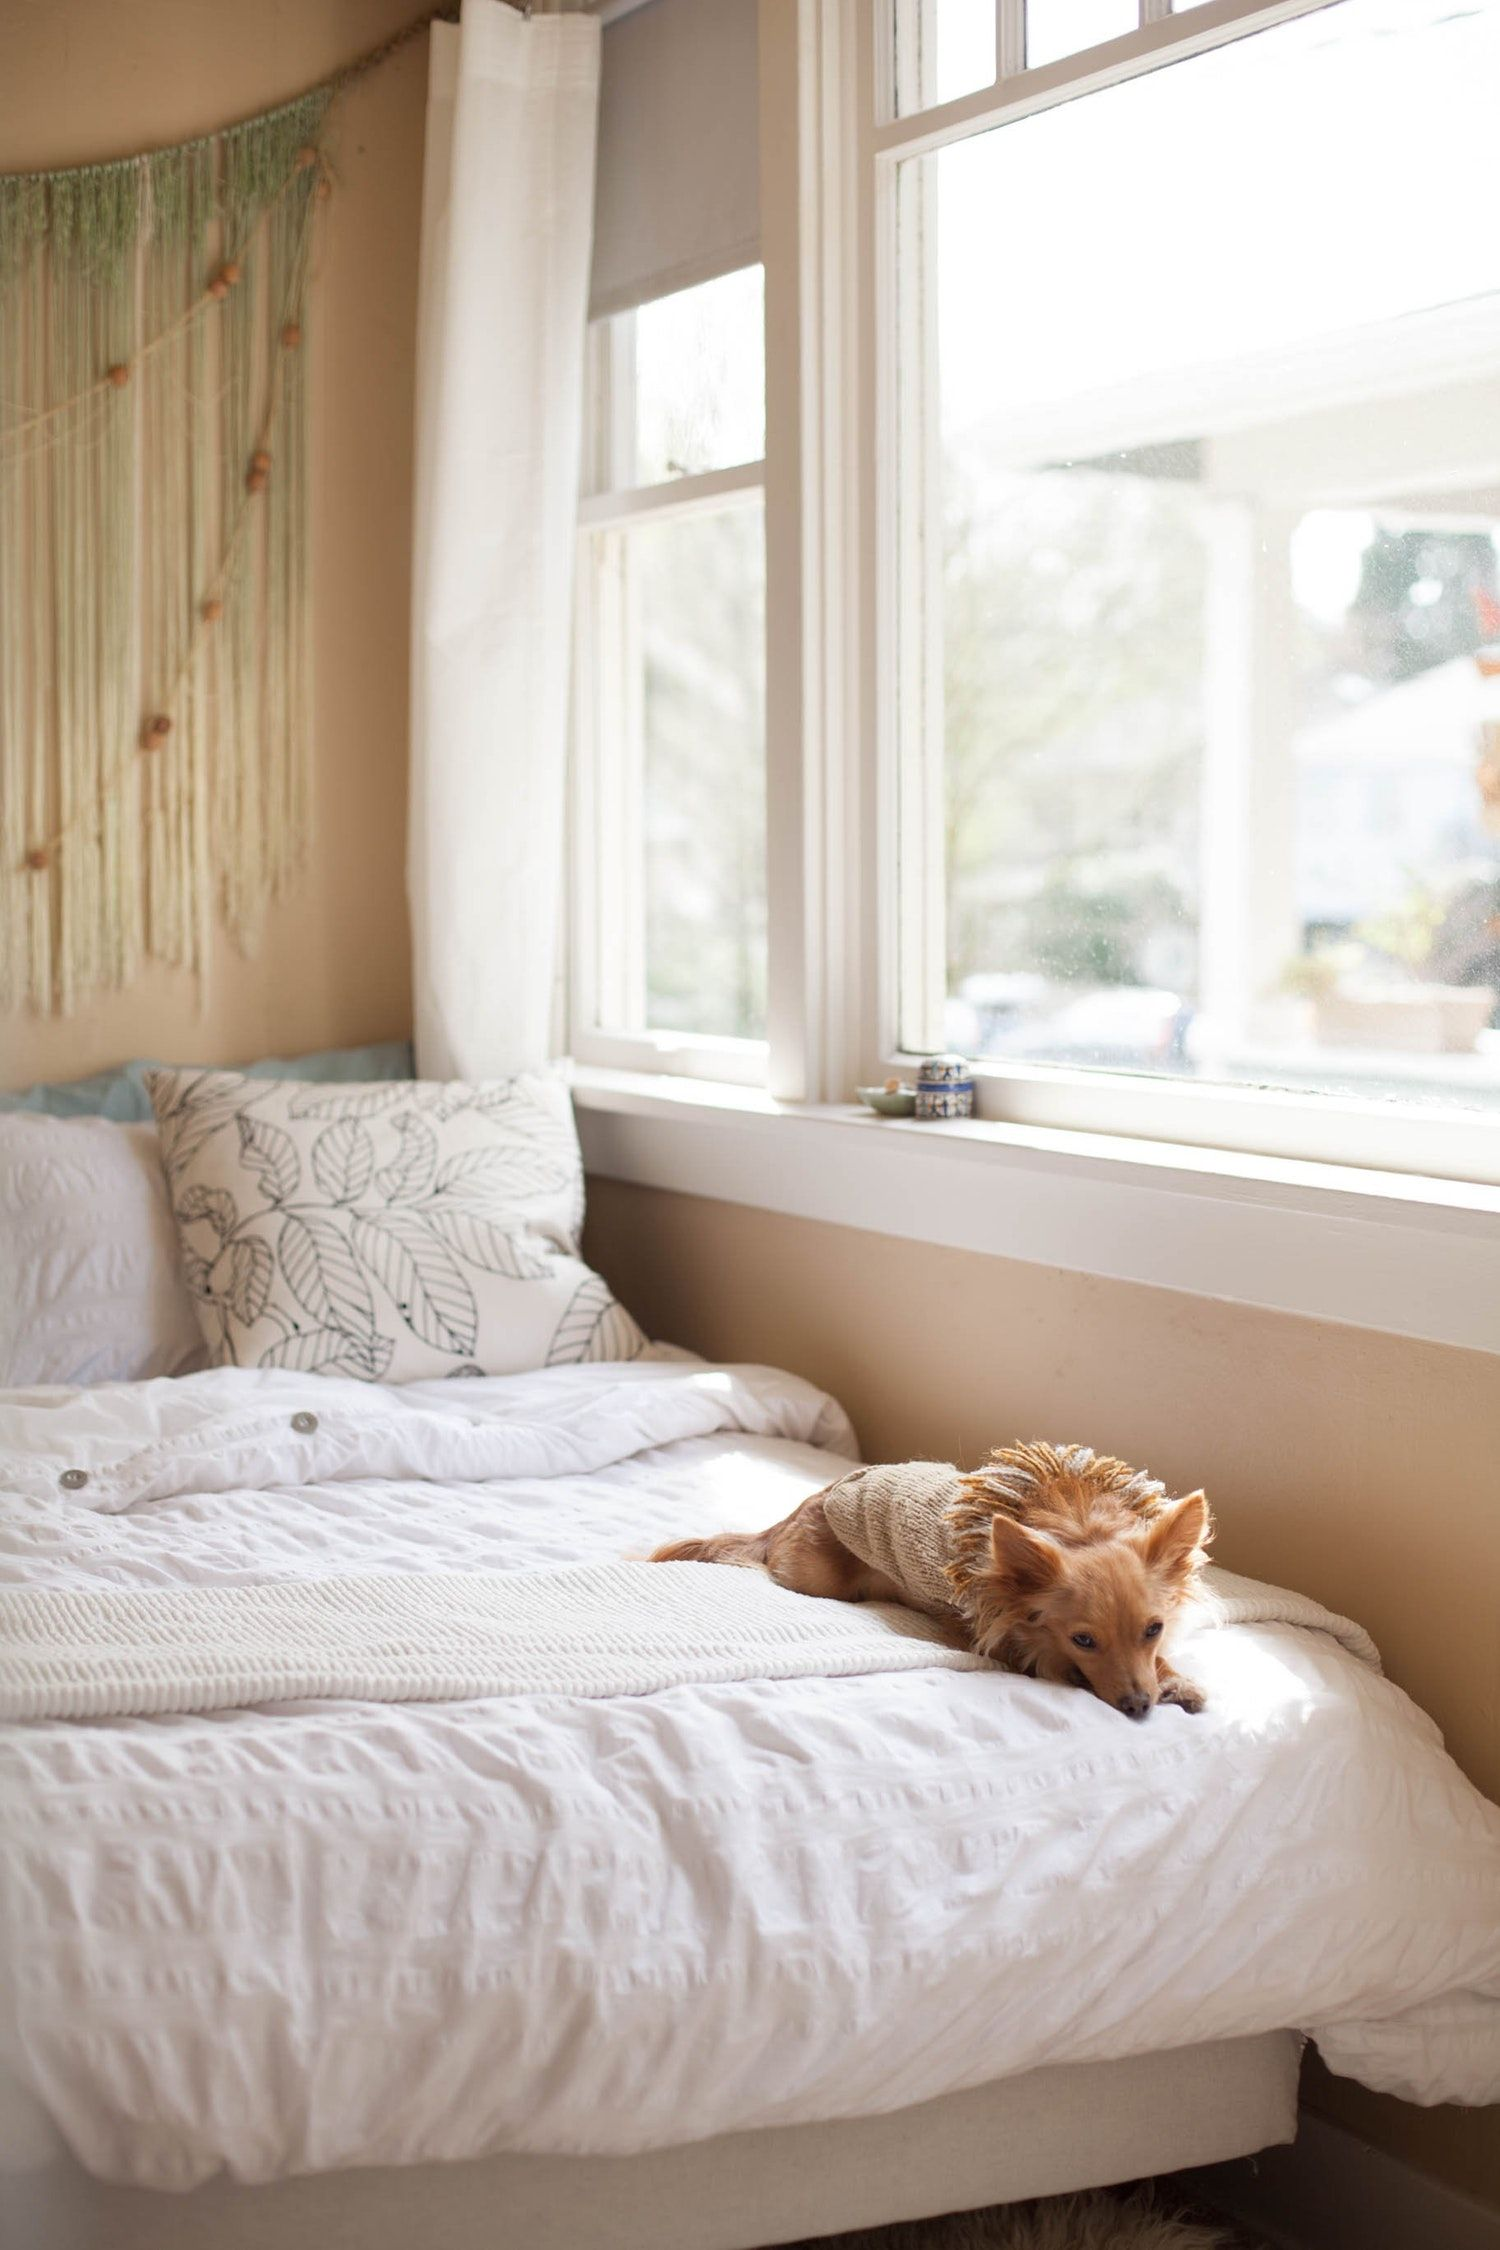 How to have a fantastic home without spending a ton of money